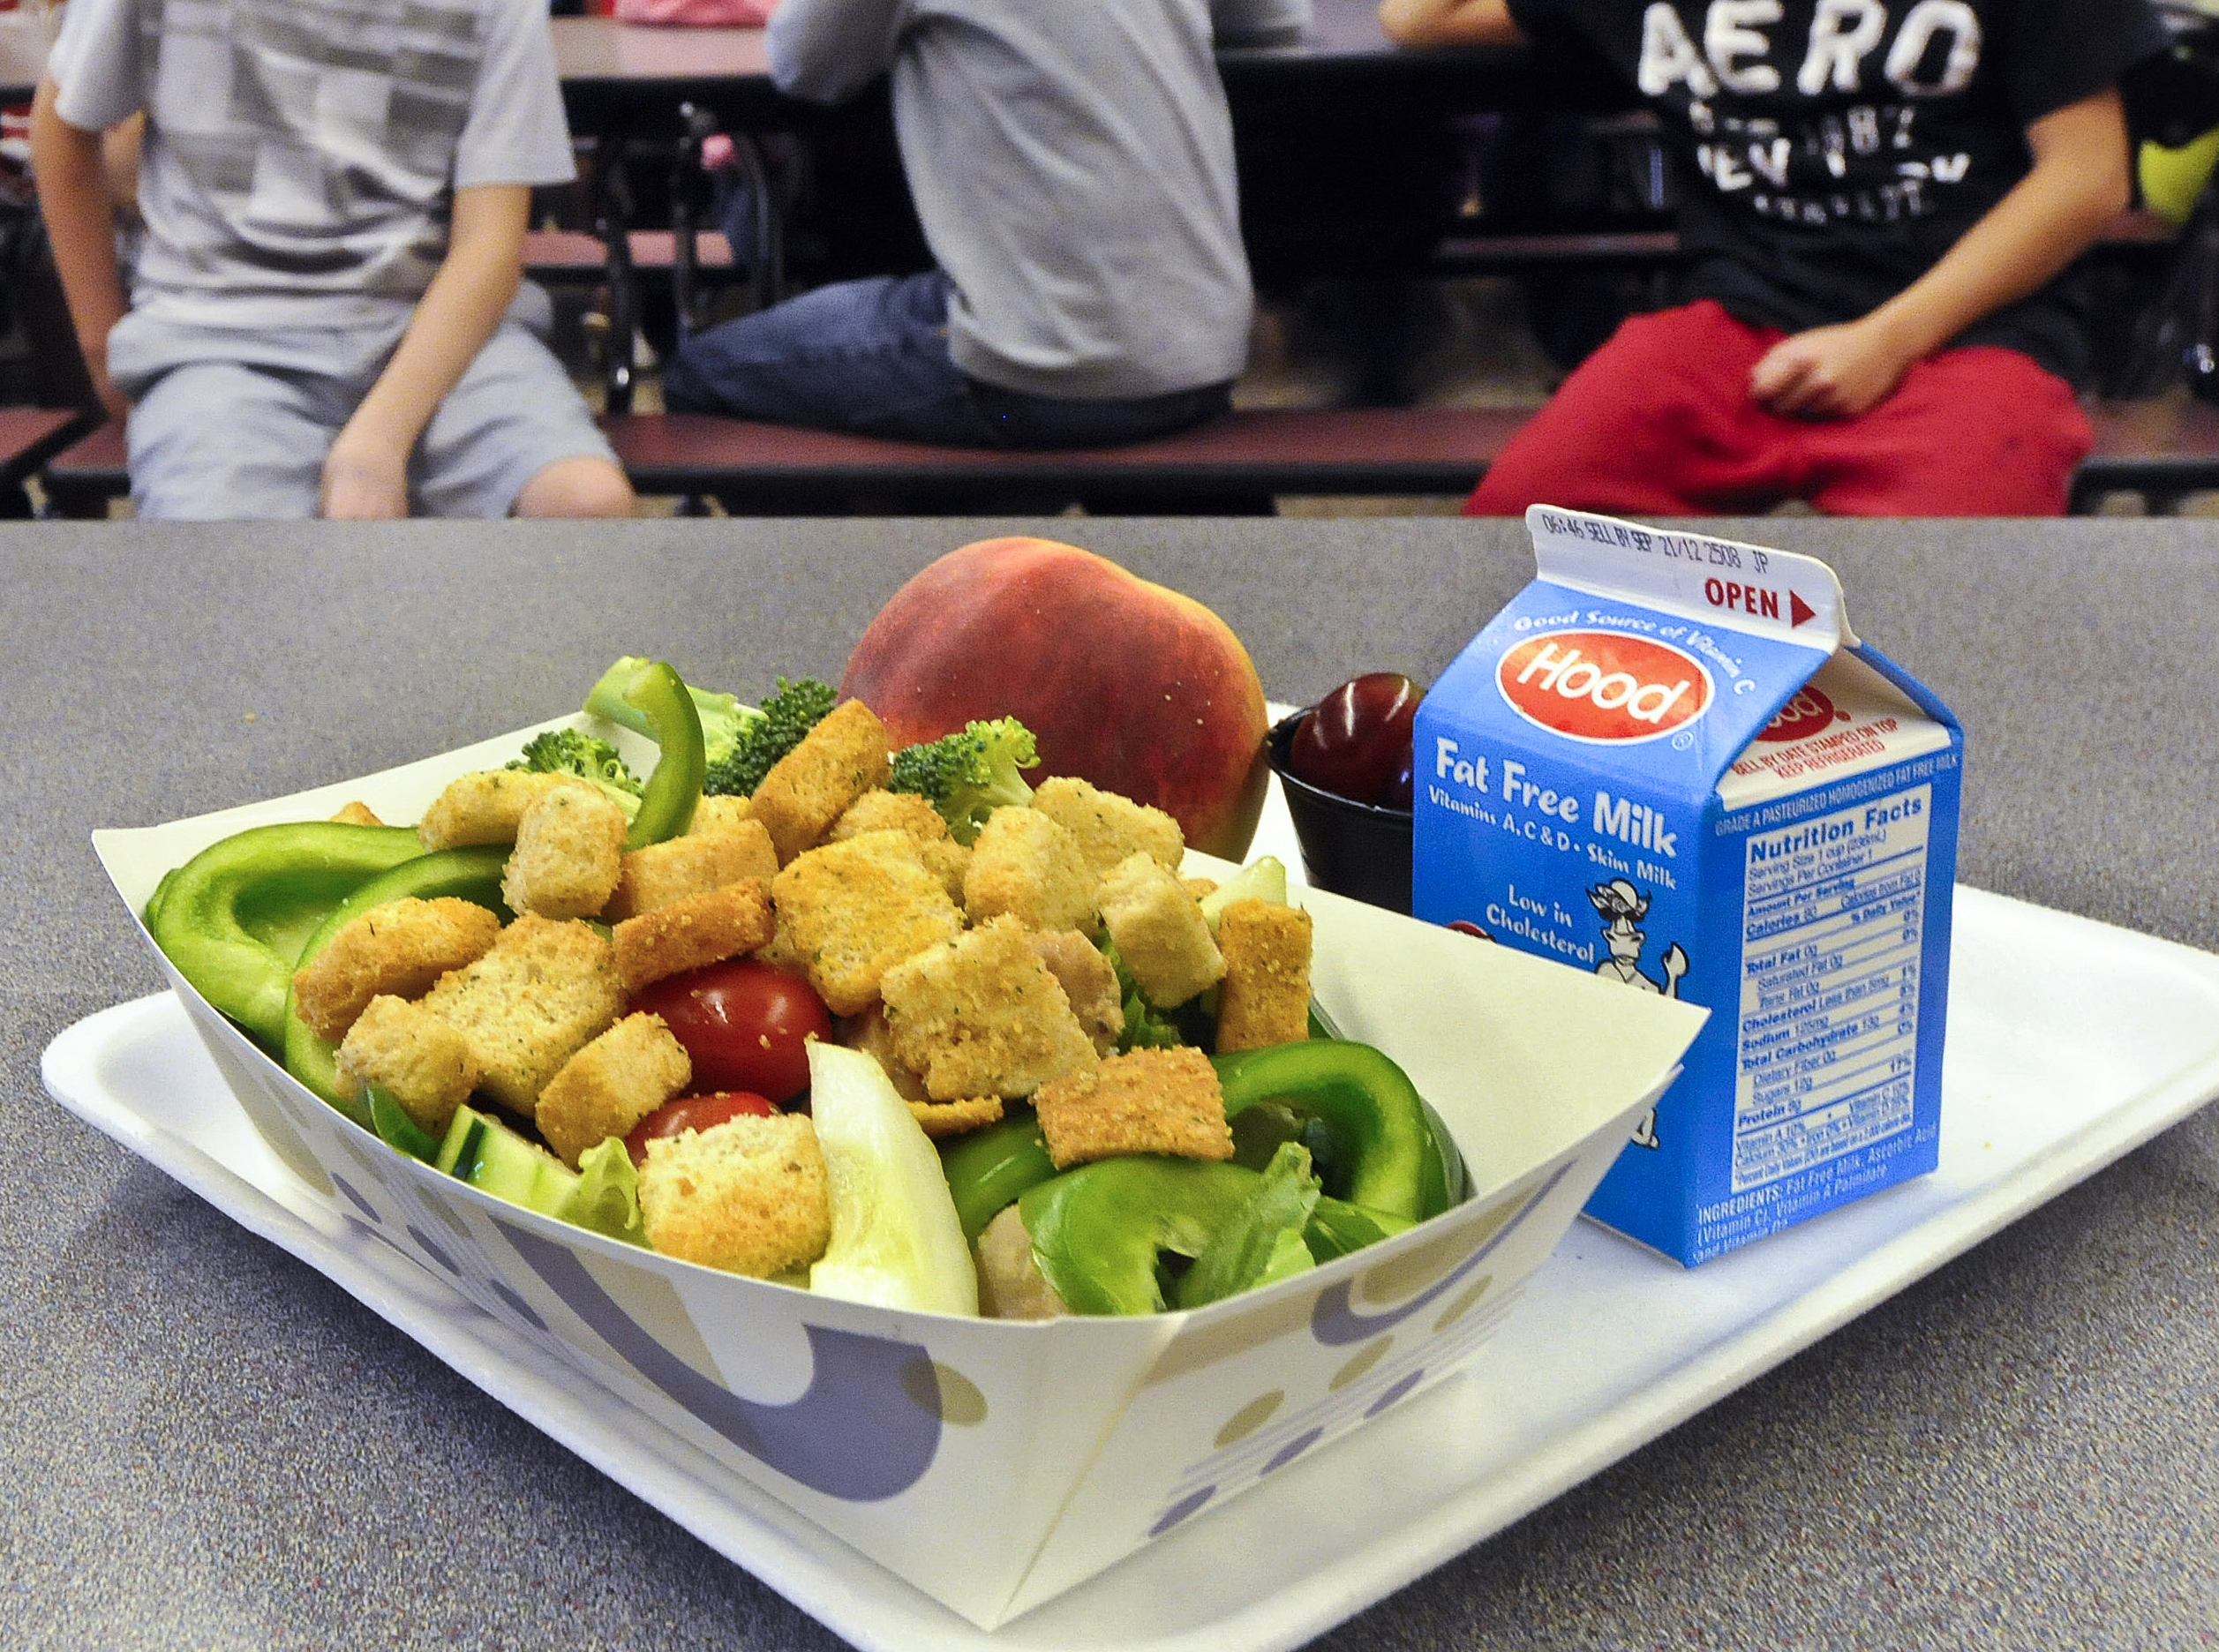 The perfect storm that threatens the quality of healthy school meals